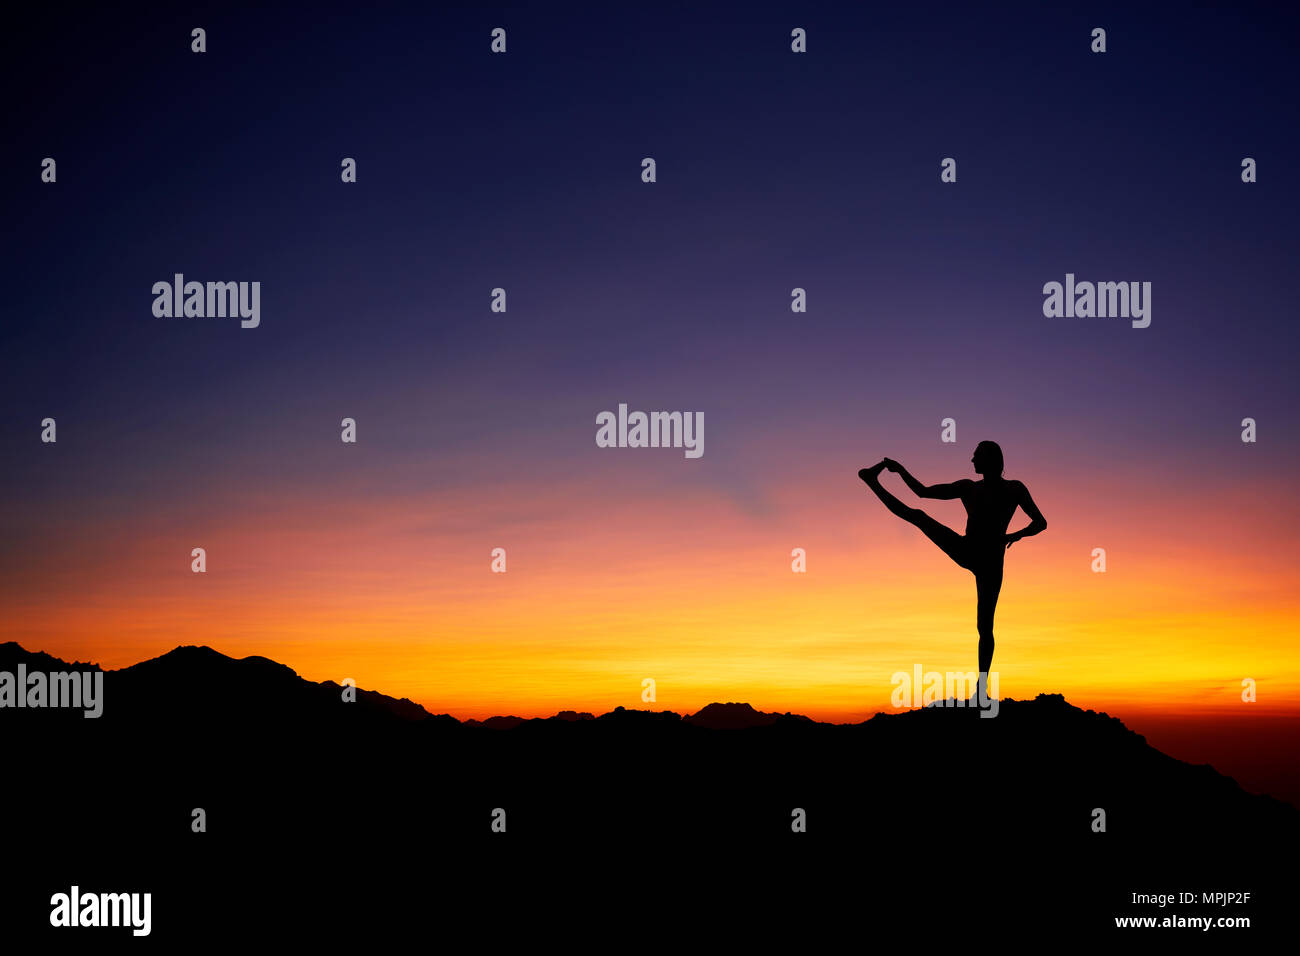 Fit Man in silhouette doing yoga balance pose at beautiful orange sunset sky background - Stock Image